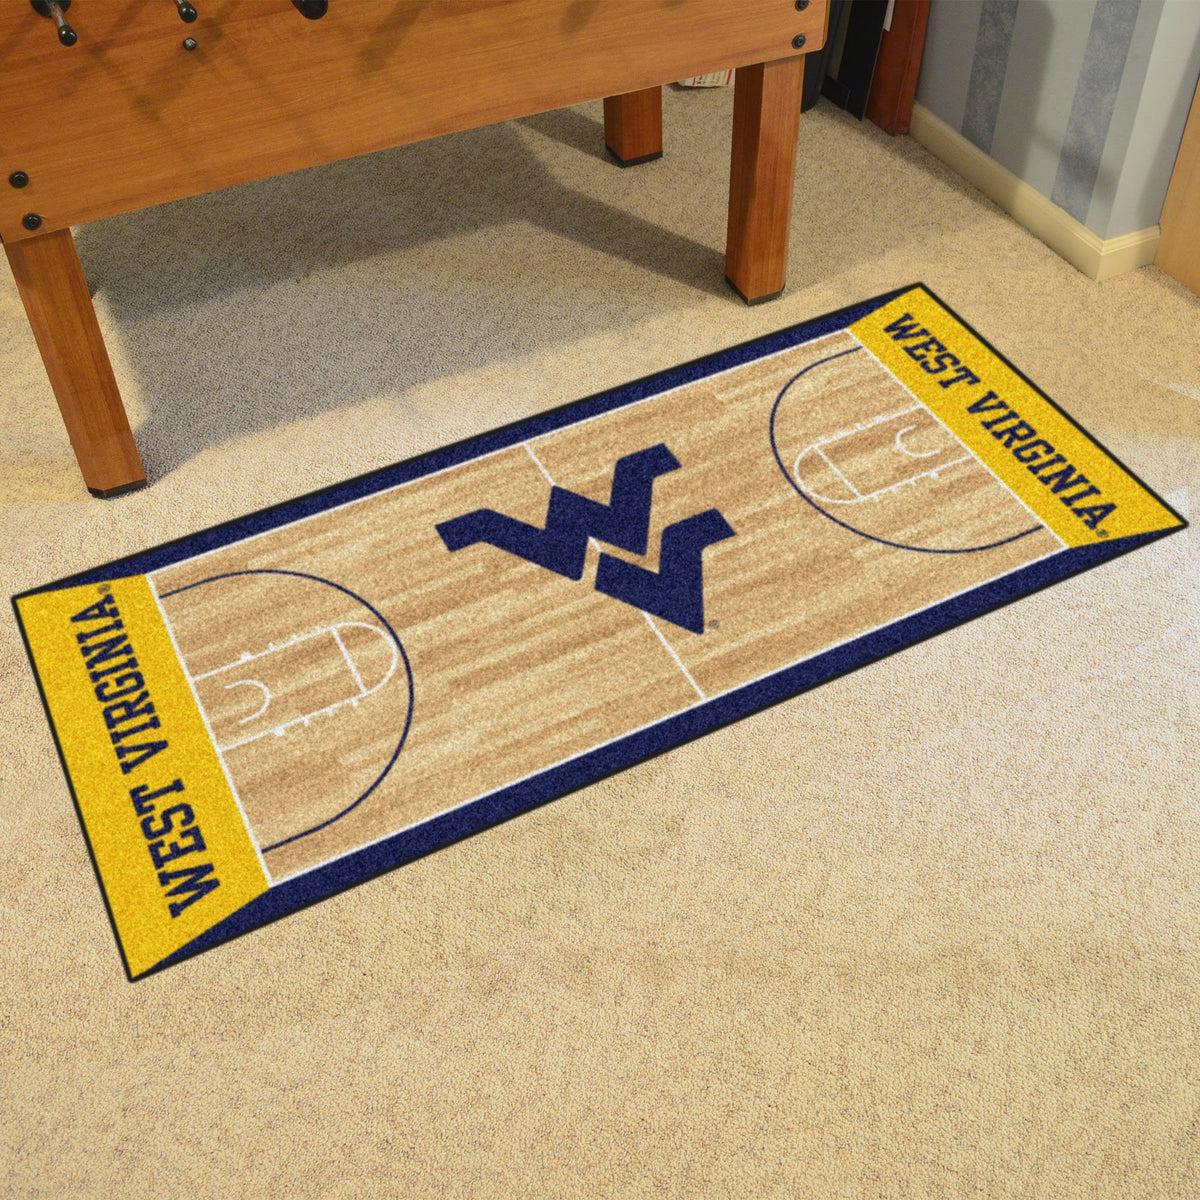 Collegiate - NCAA Basketball Runner Collegiate Mats, Rectangular Mats, NCAA Basketball Runner, Collegiate, Home Fan Mats West Virginia